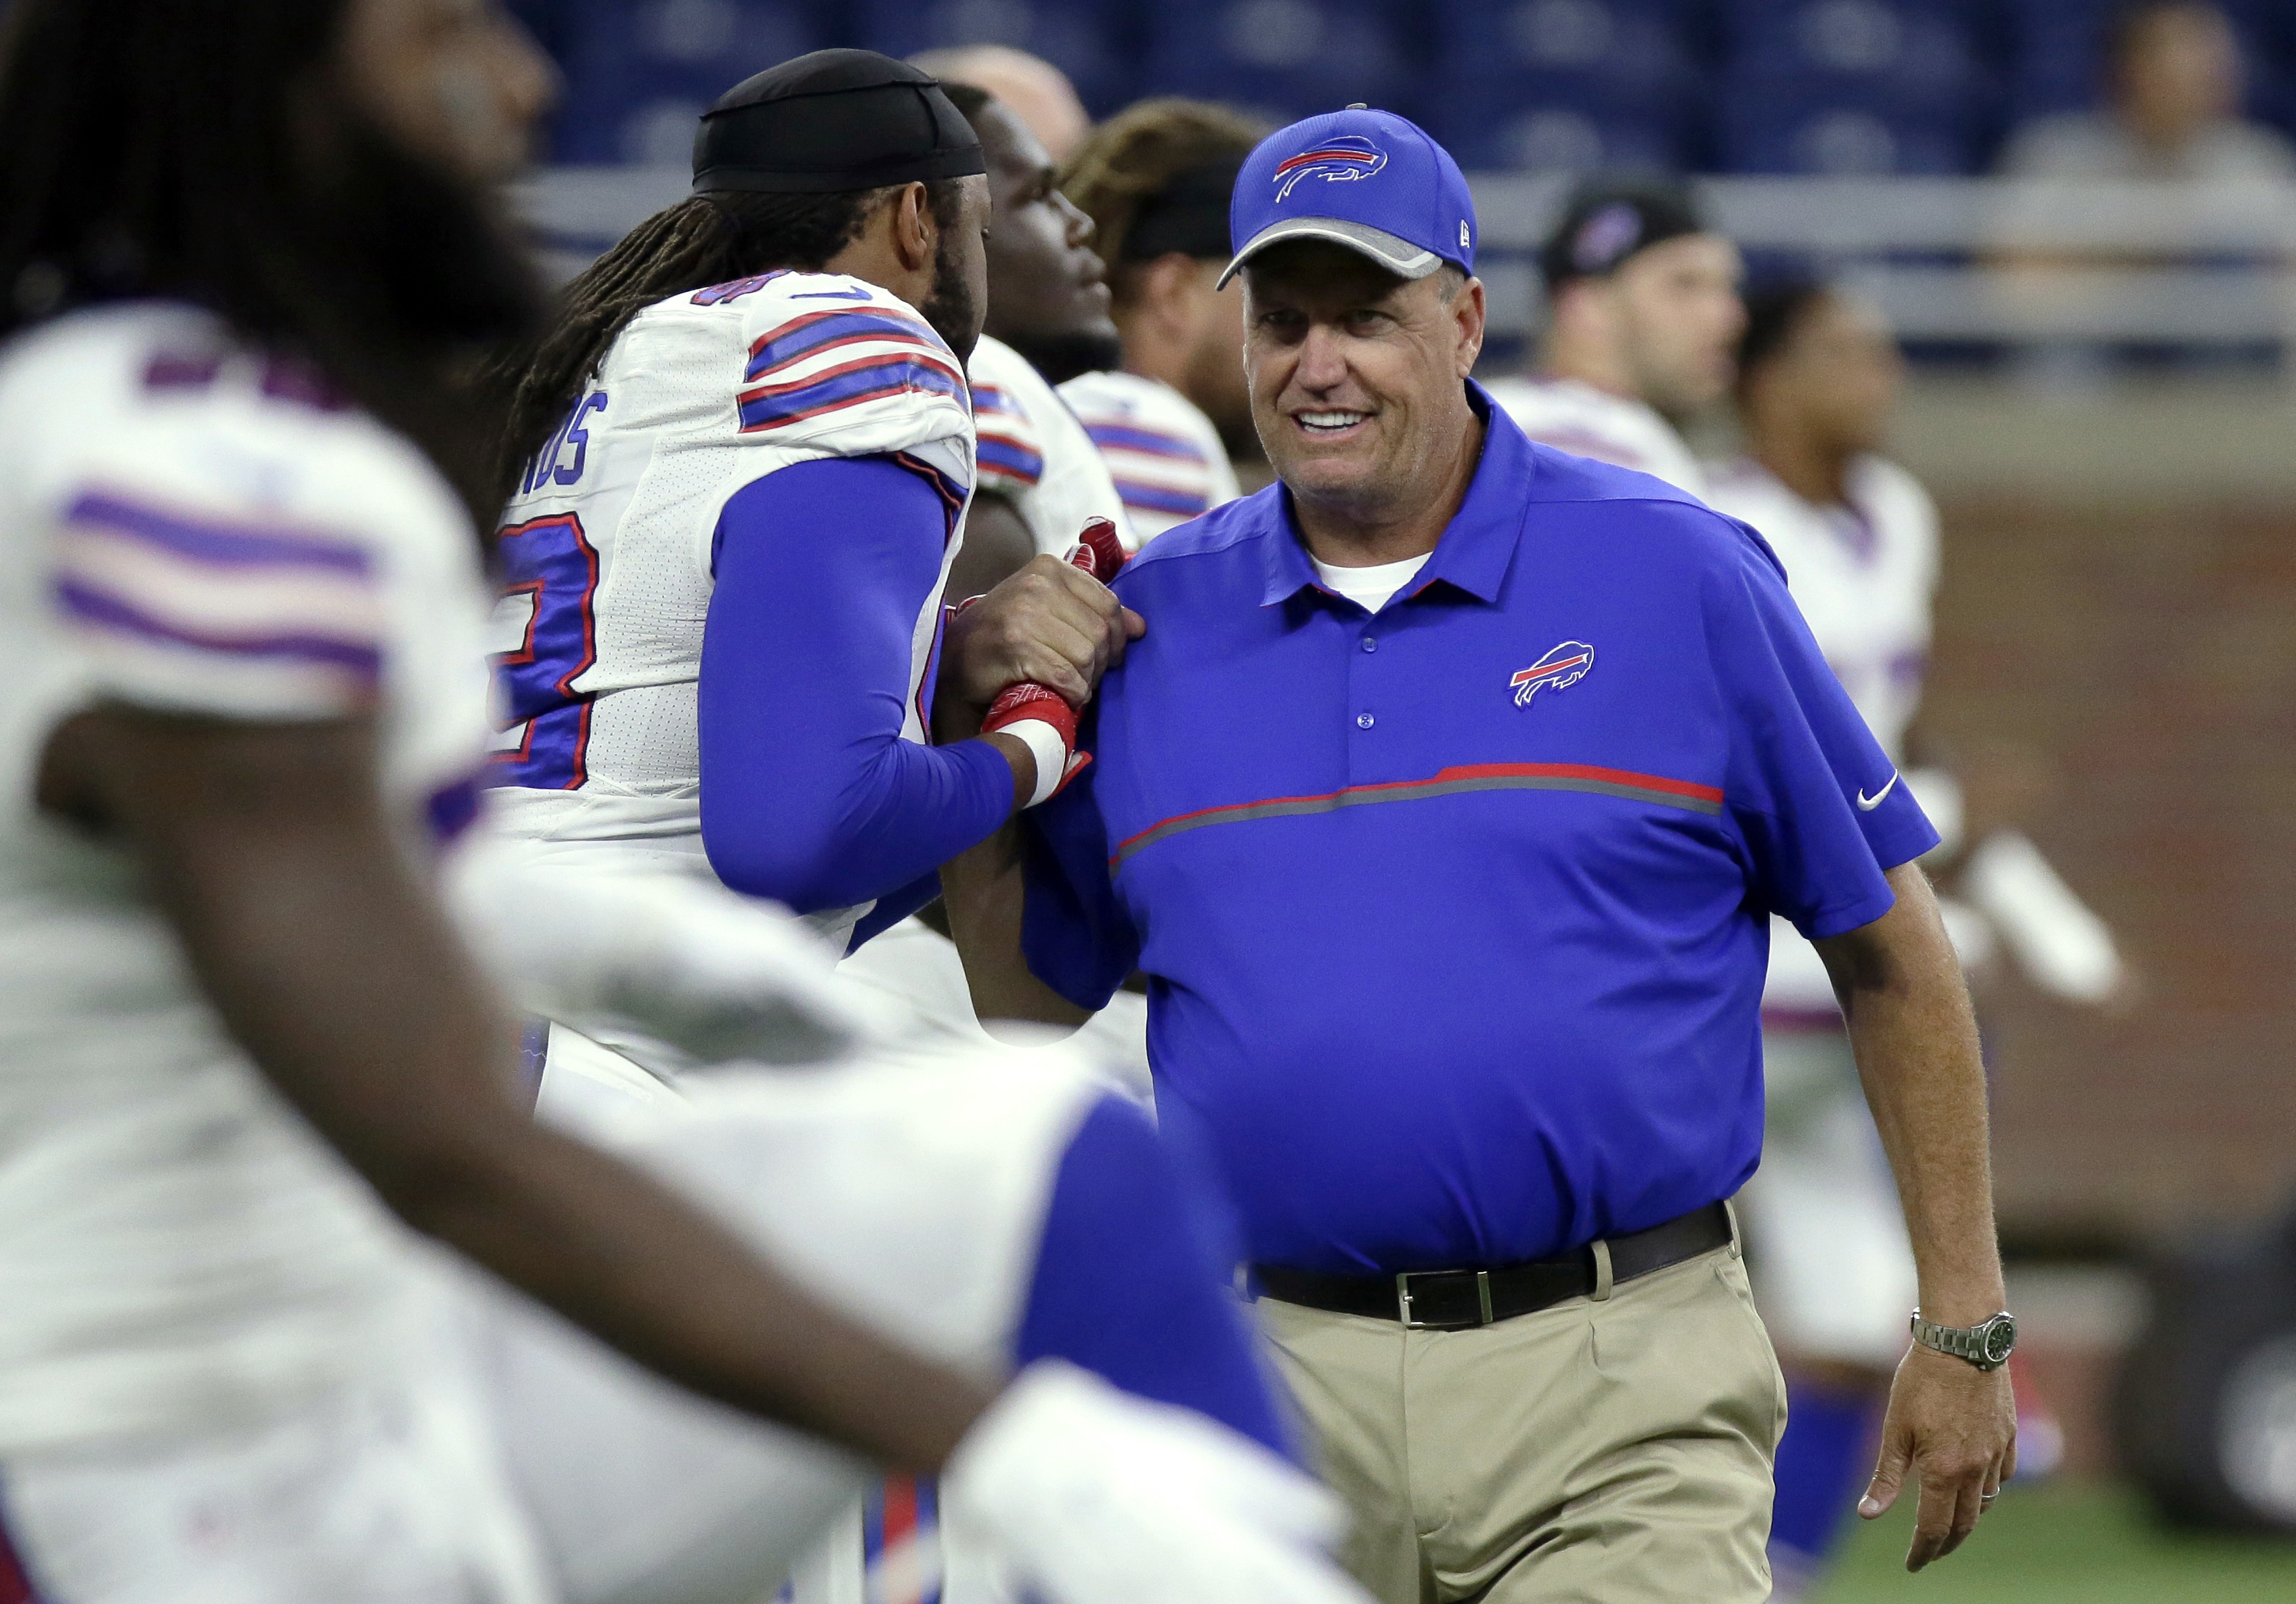 FILE - In this Sept. 1, 2016, file photo, Buffalo Bills coach Rex Ryan talks to players before the team's NFL preseason football game against the Detroit Lions in Detroit. Despite injuries, Ryan insists his defense will be improved from last year, when it